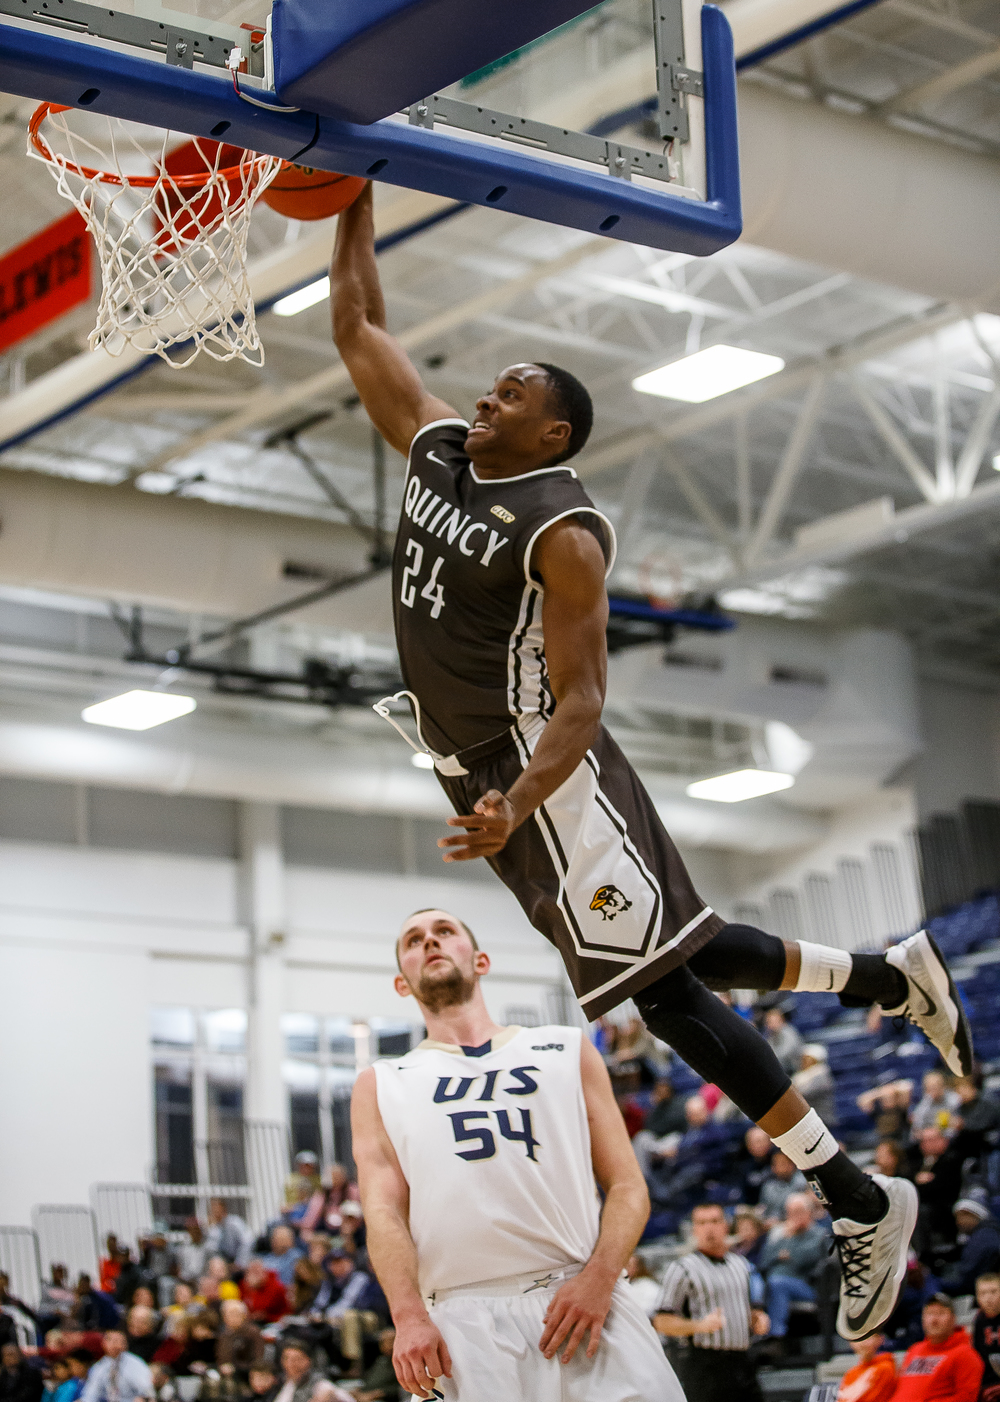 Quincy University's Godson Eneogwe (24) throws down a dunk in front of University of Illinois Springfield's Dylan Sparkman (54) in the first half at the UIS Athletic & Recreation Center, Thursday, Jan. 8, 2015, in Springfield, Ill. Justin L. Fowler/The State Journal-Register